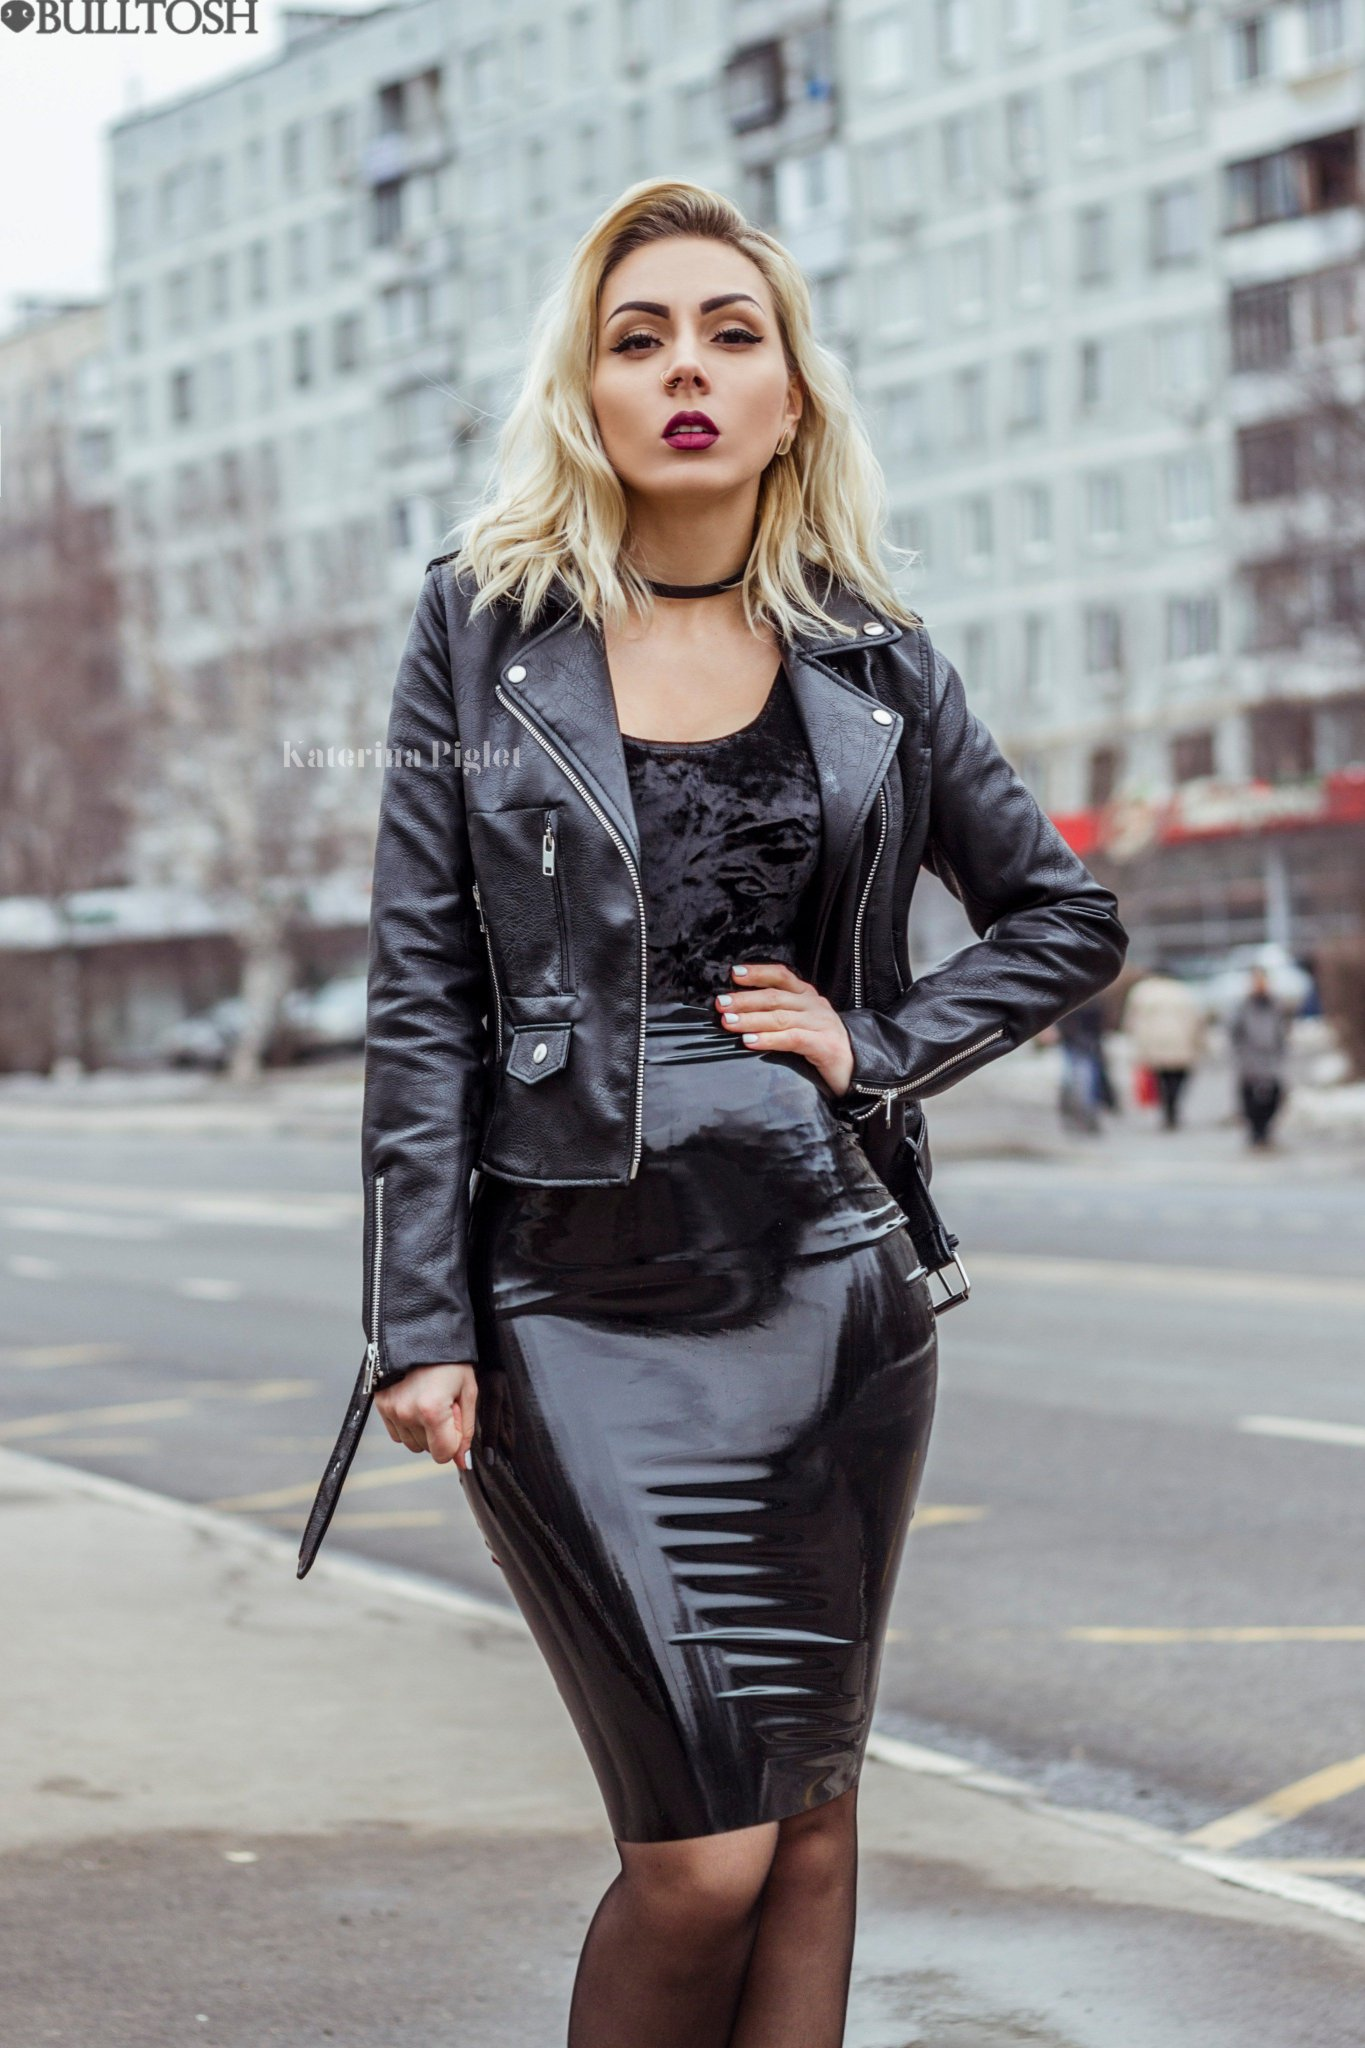 Blonde woman wearing shiny leather pants and high heel boots 10